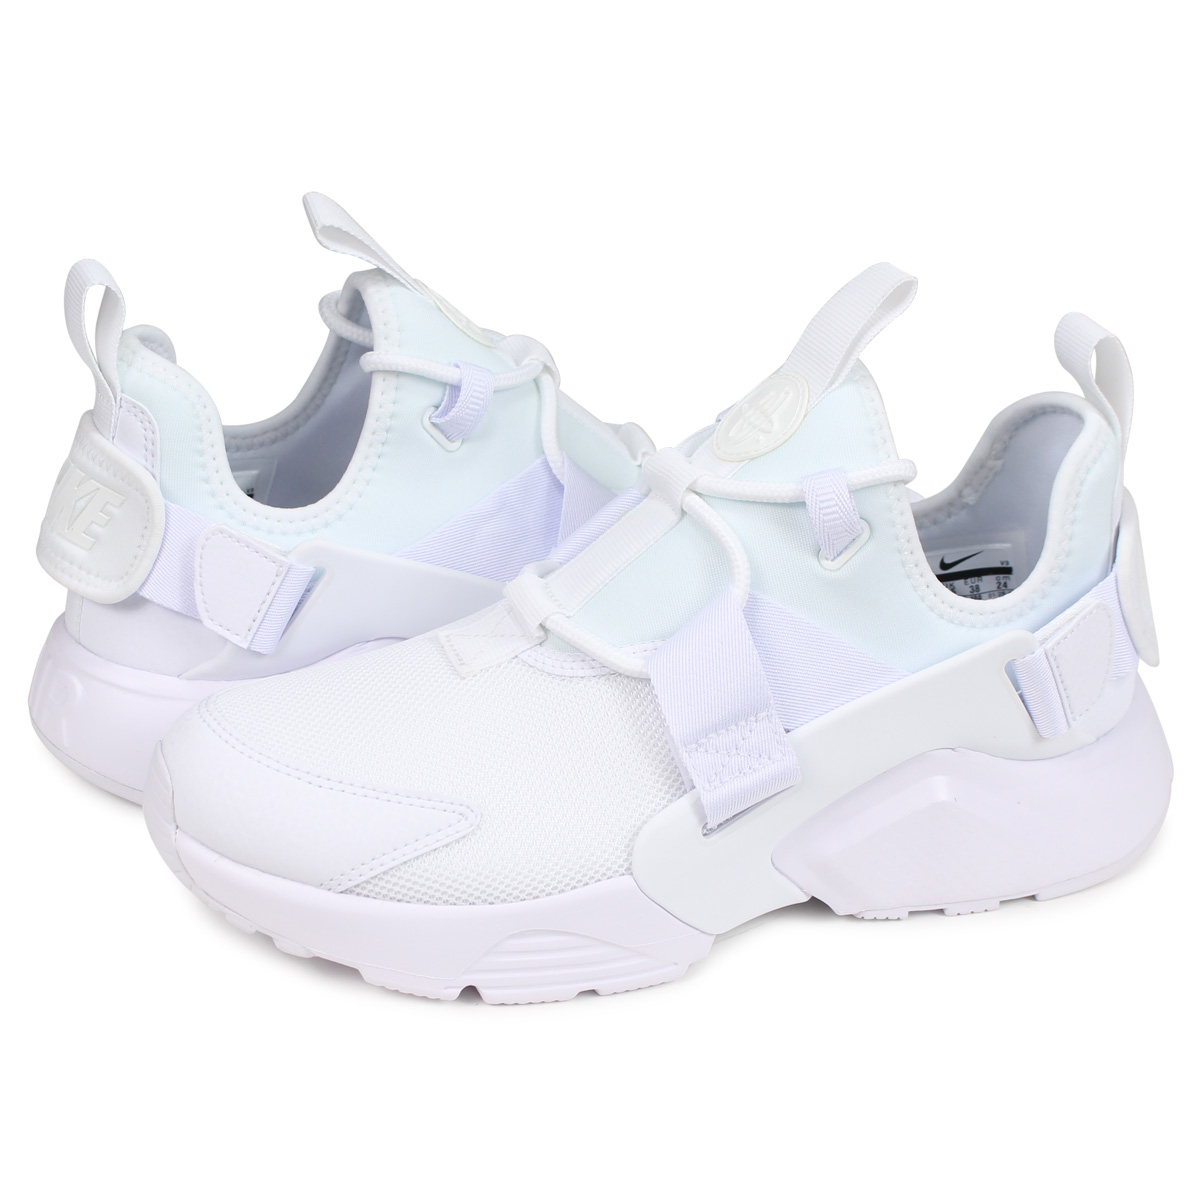 9dcde1c079331 Nike NIKE エアハラチシティスニーカーレディース WMNS AIR HUARACHE CITY LOW white white AH6804- 100  load planned Shinnyu load in reservation product 5 8 ...